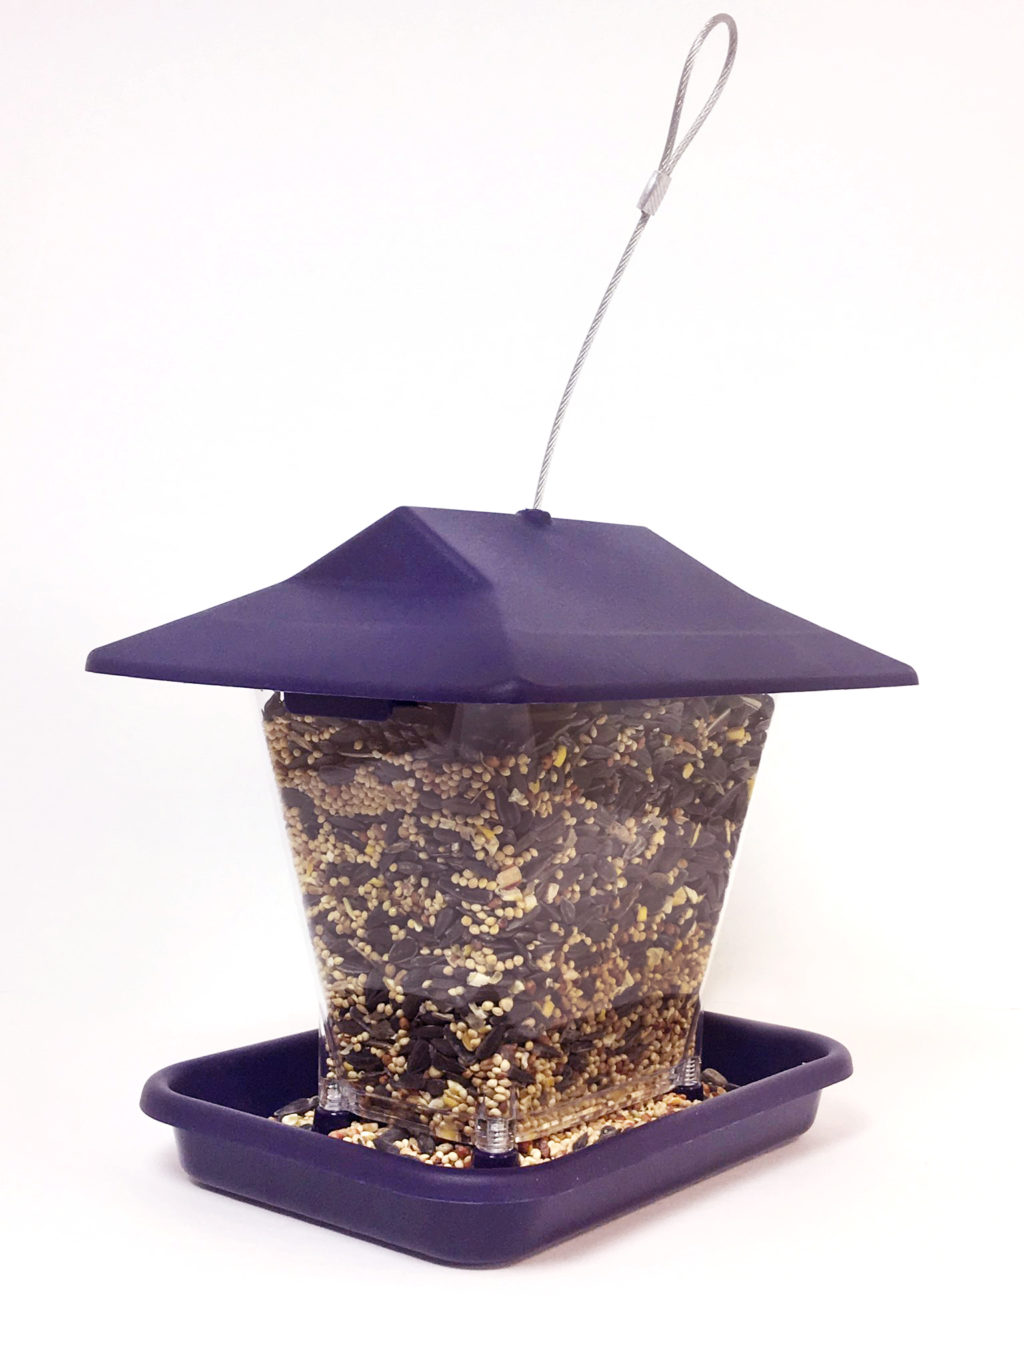 Stokes Select ranch feeder filled with bird seed